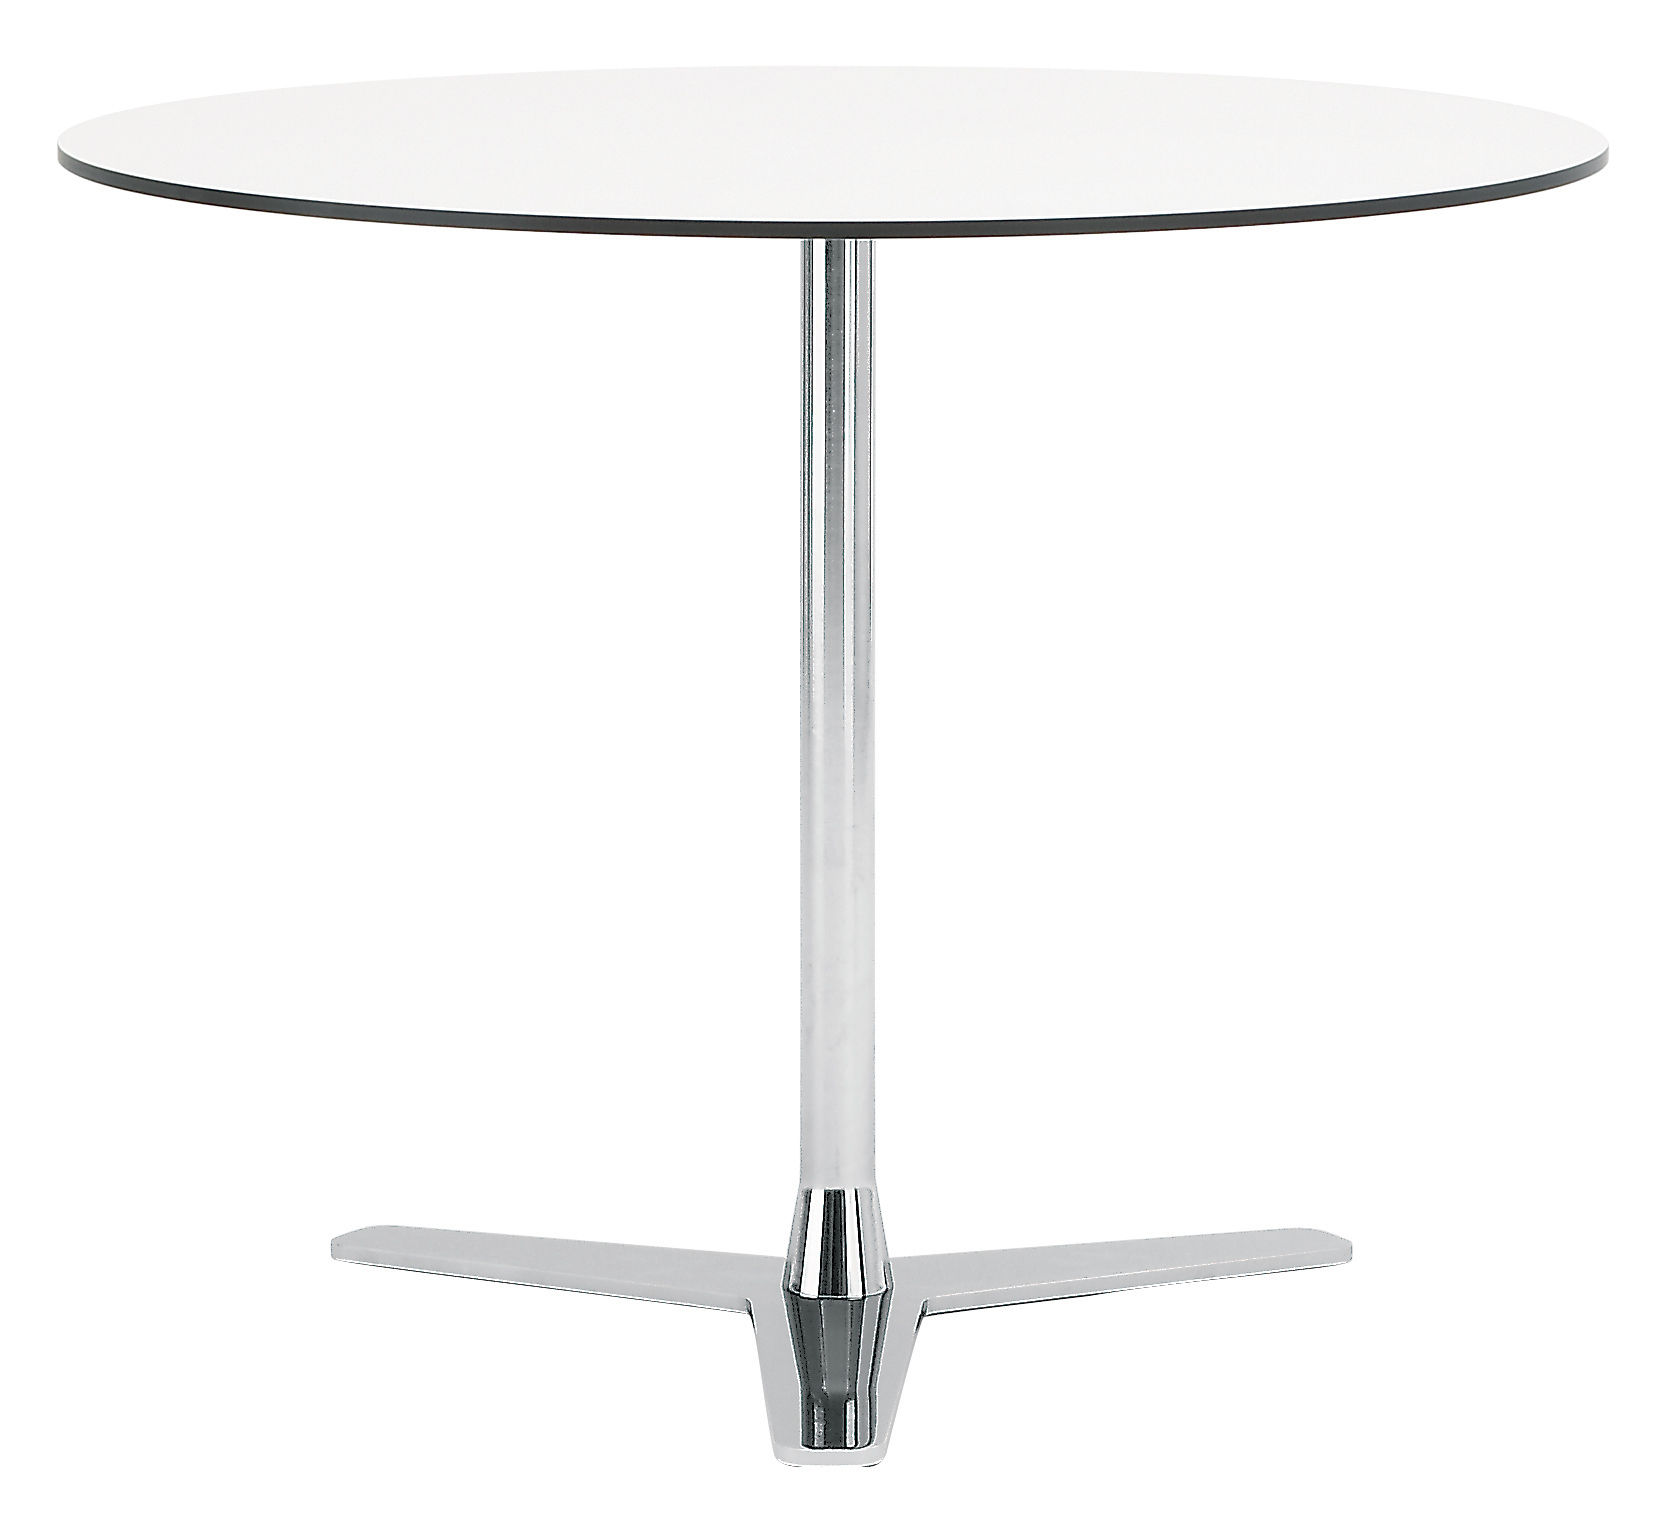 table propeller 90 cm blanc pied chrom offecct. Black Bedroom Furniture Sets. Home Design Ideas